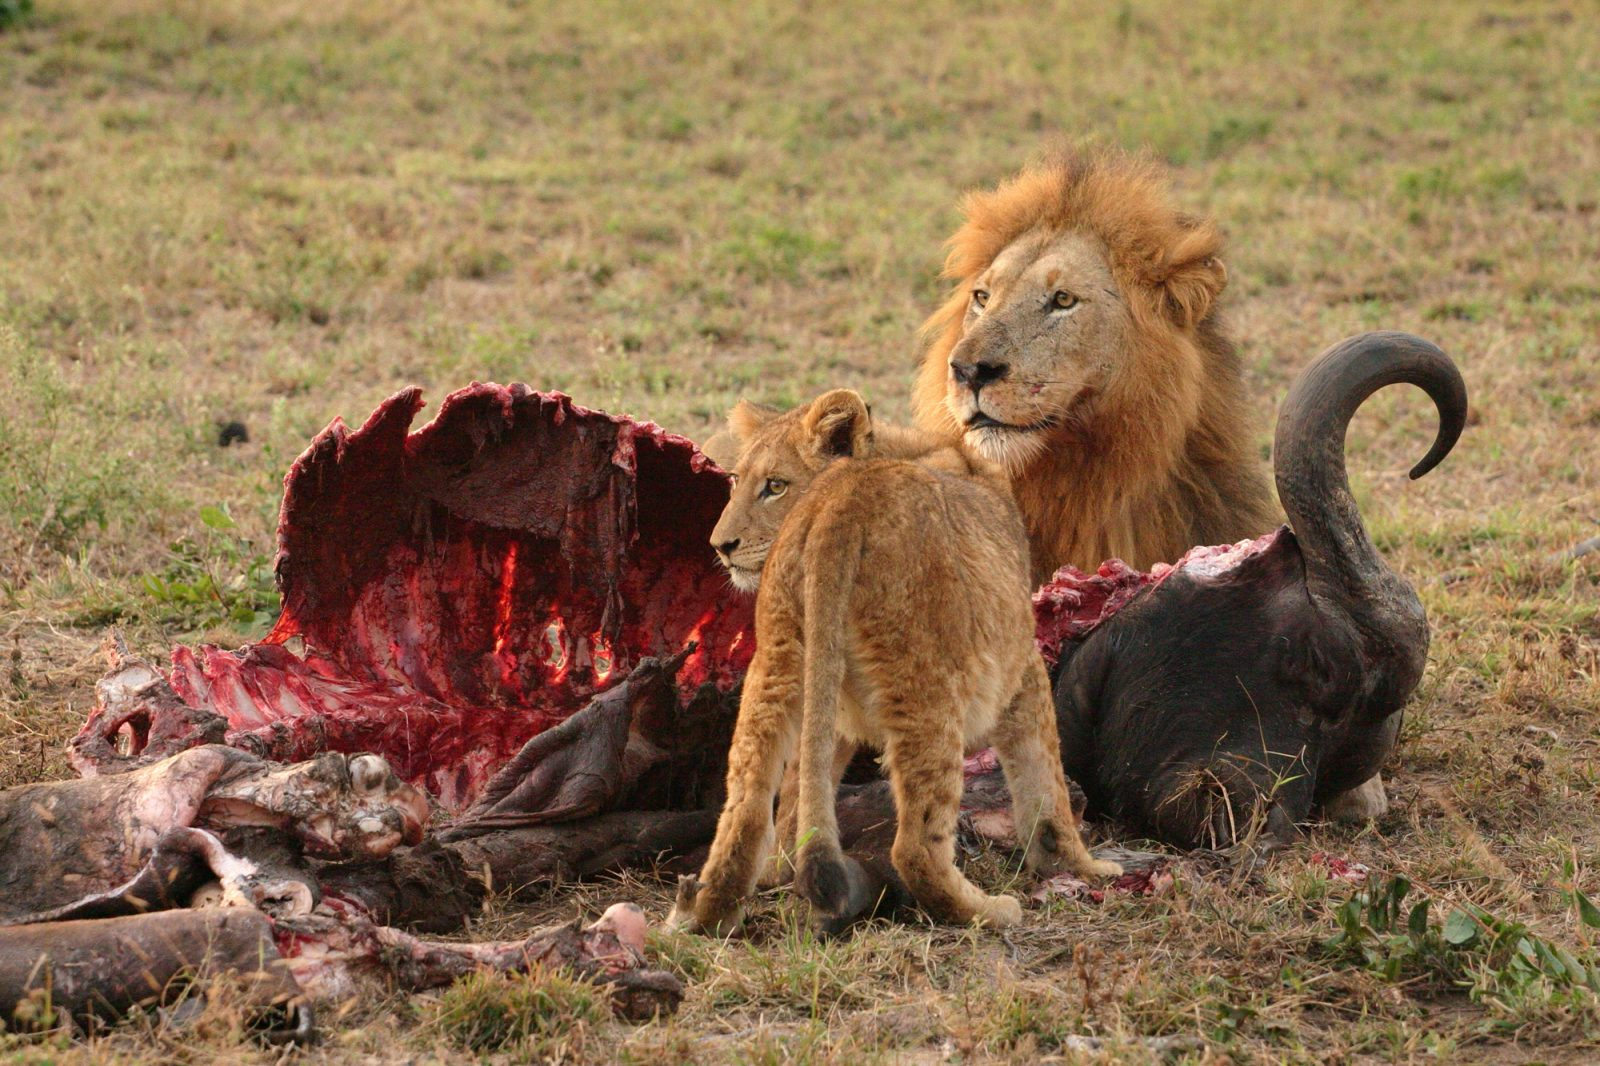 Kenya Safaris and Tours | Penfam Tours and Safaris | Male Lion and Cub with a Buffalo meal